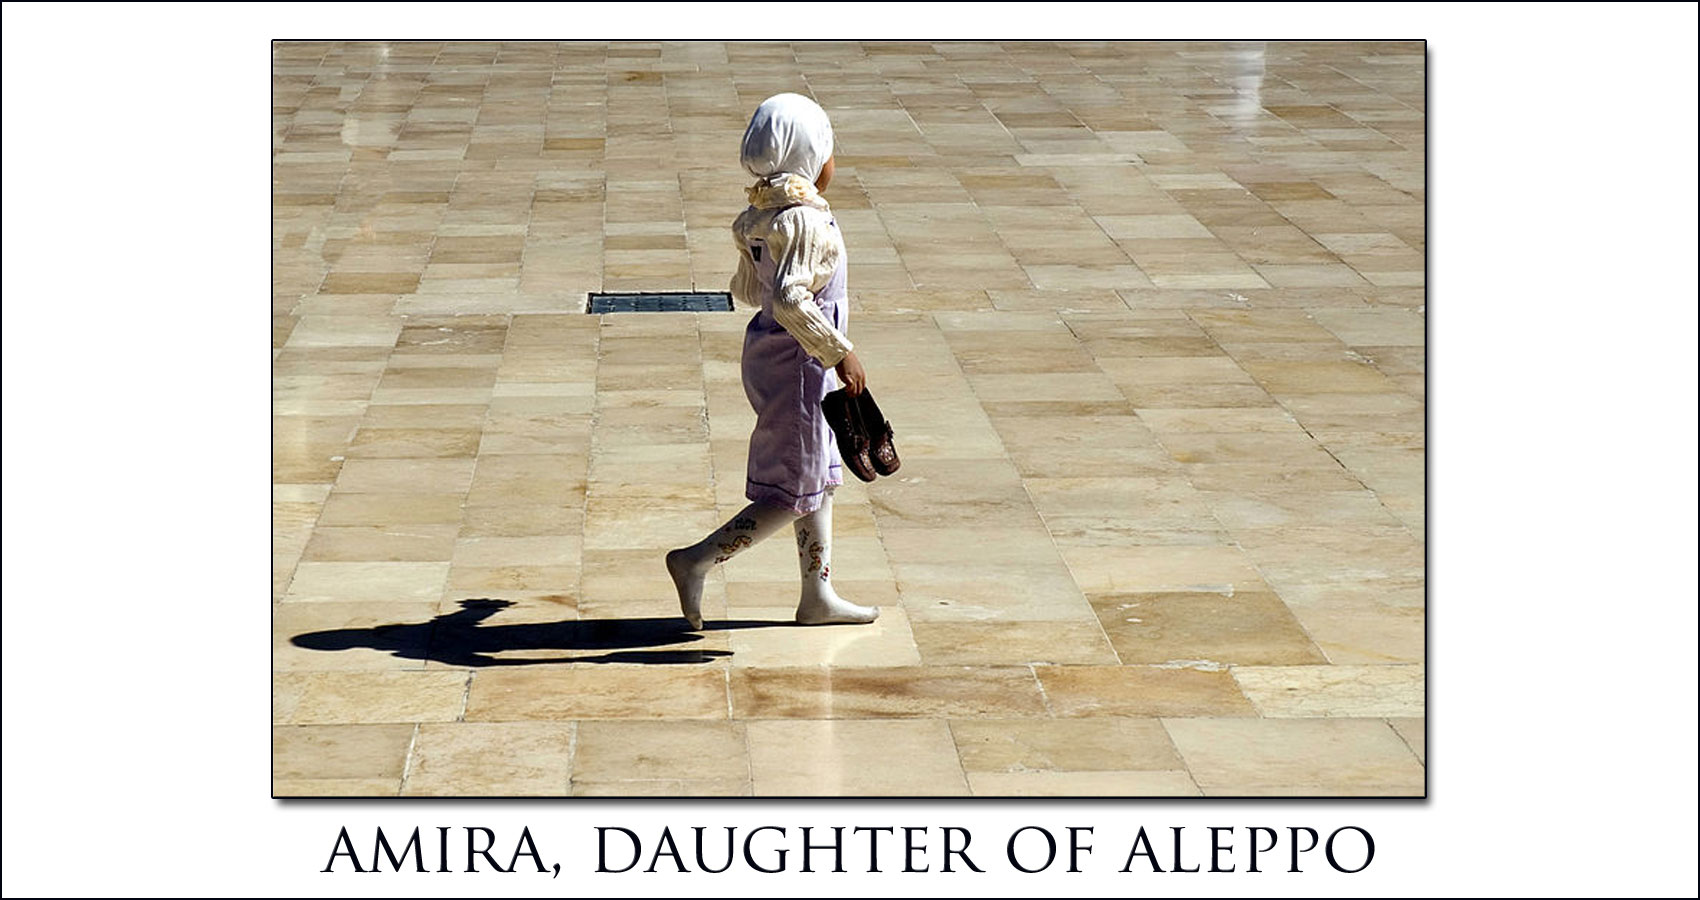 Amira, Daughter of Aleppo by Nobby66 at Spillwords.com